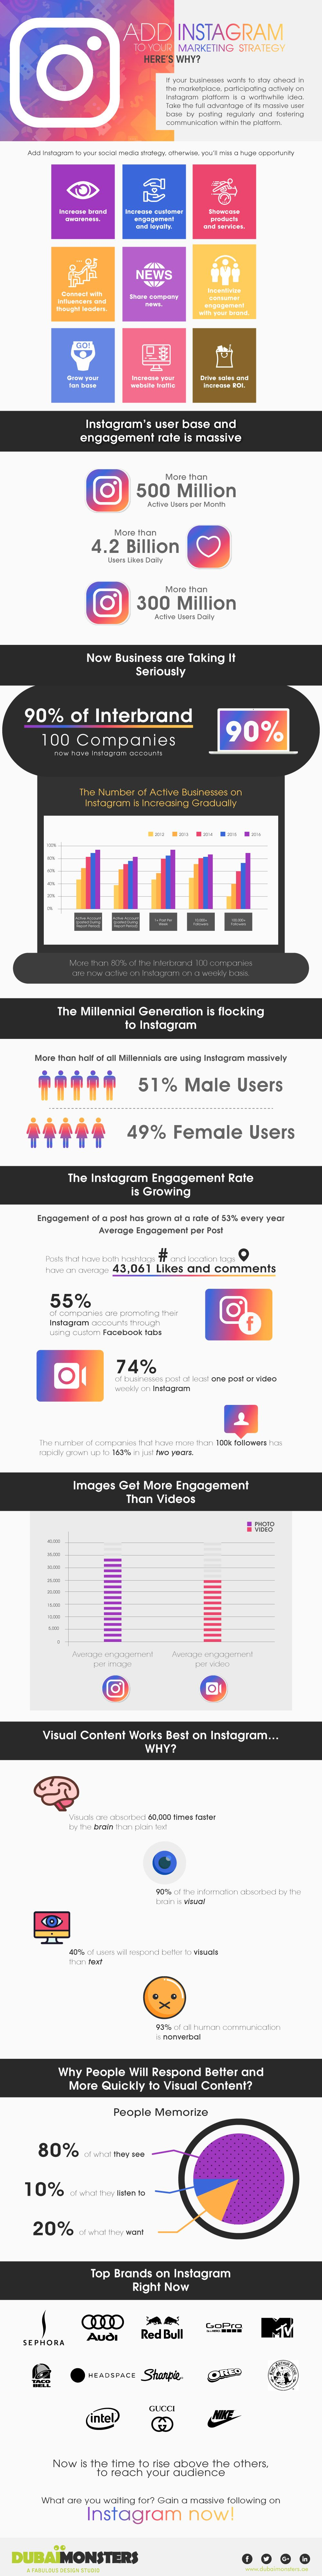 Add Instagram to Your Marketing Strategy, Here's Why?